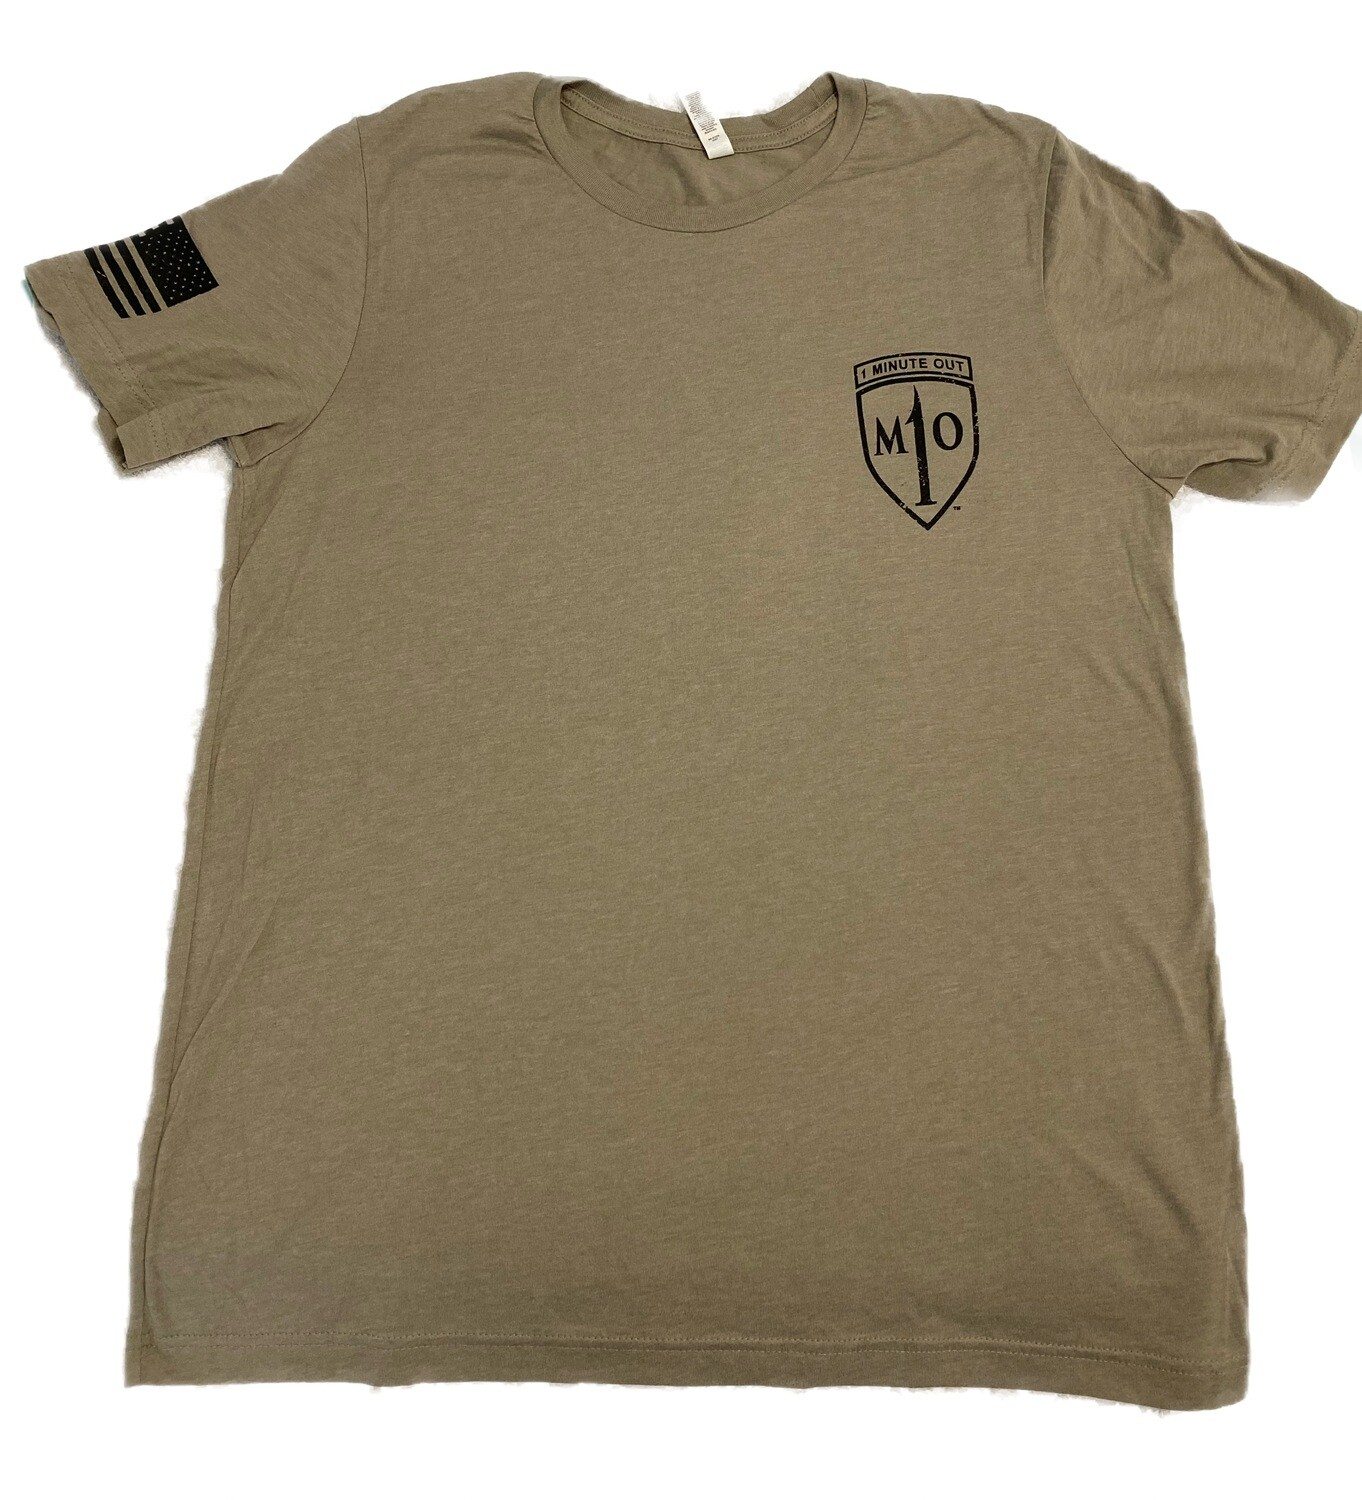 1 Minute Out Stone NVG Operator Logo T-Shirt-LARGE